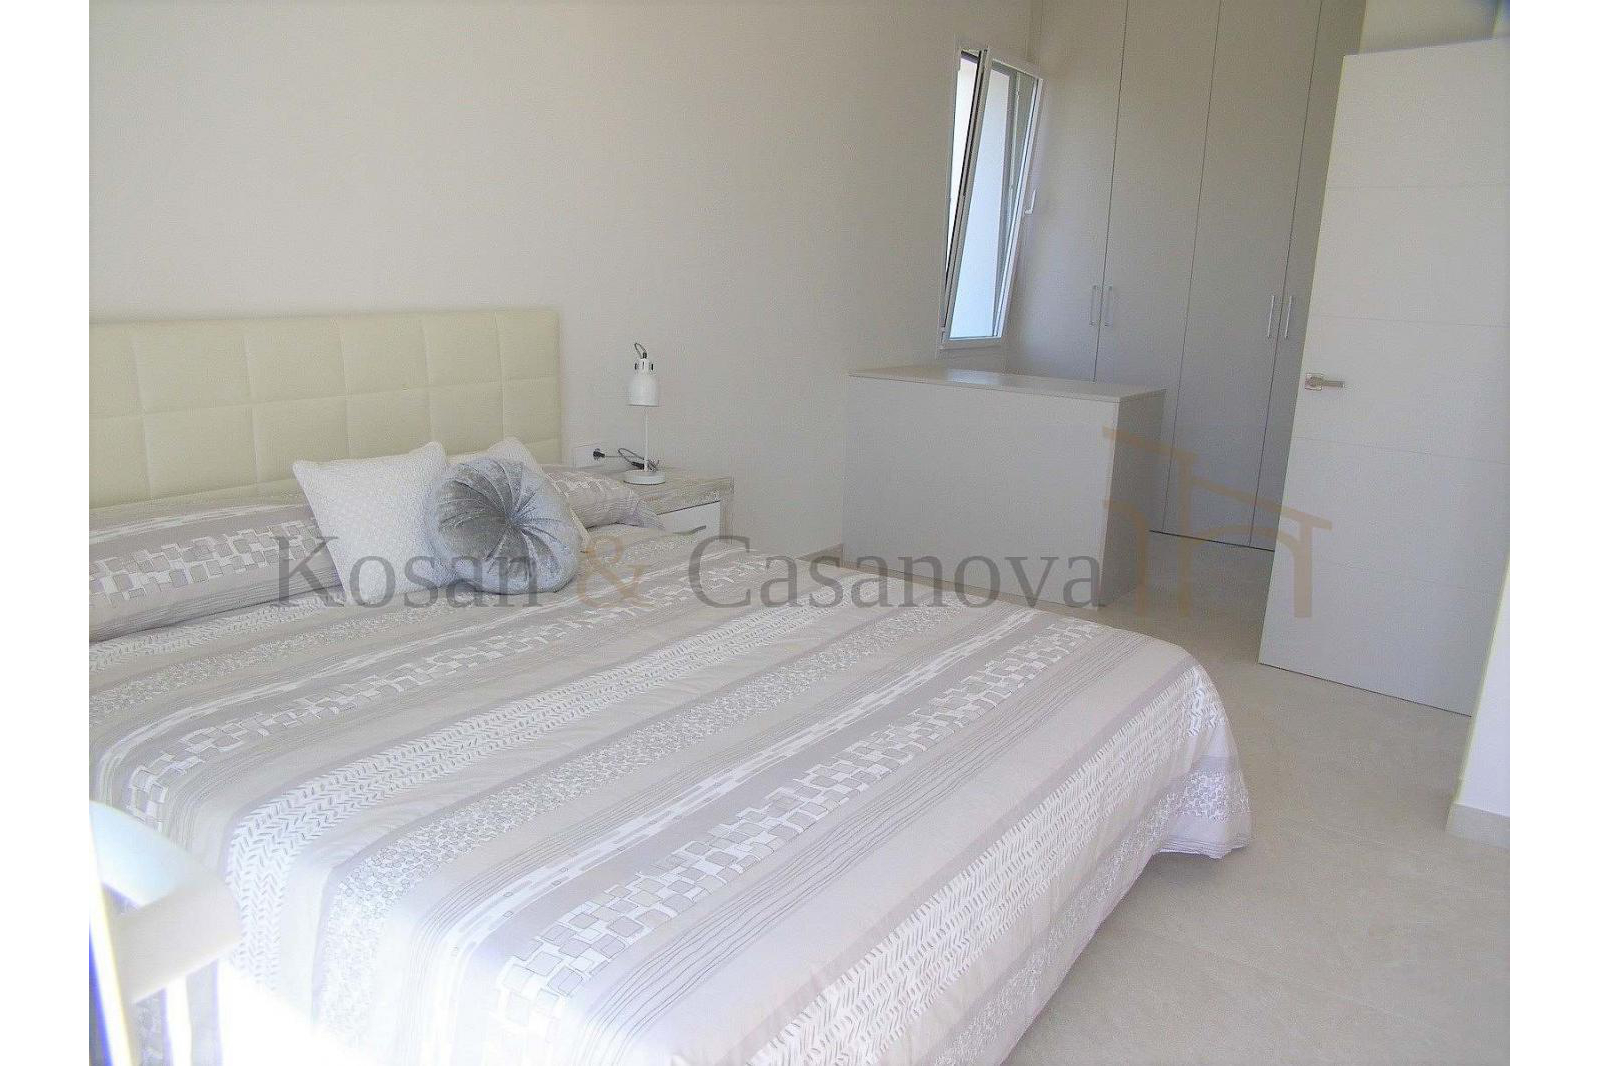 Moraira / Teulada- A contemporary Villa, bright and airy, with openspaces, ideal for modern living pic 17